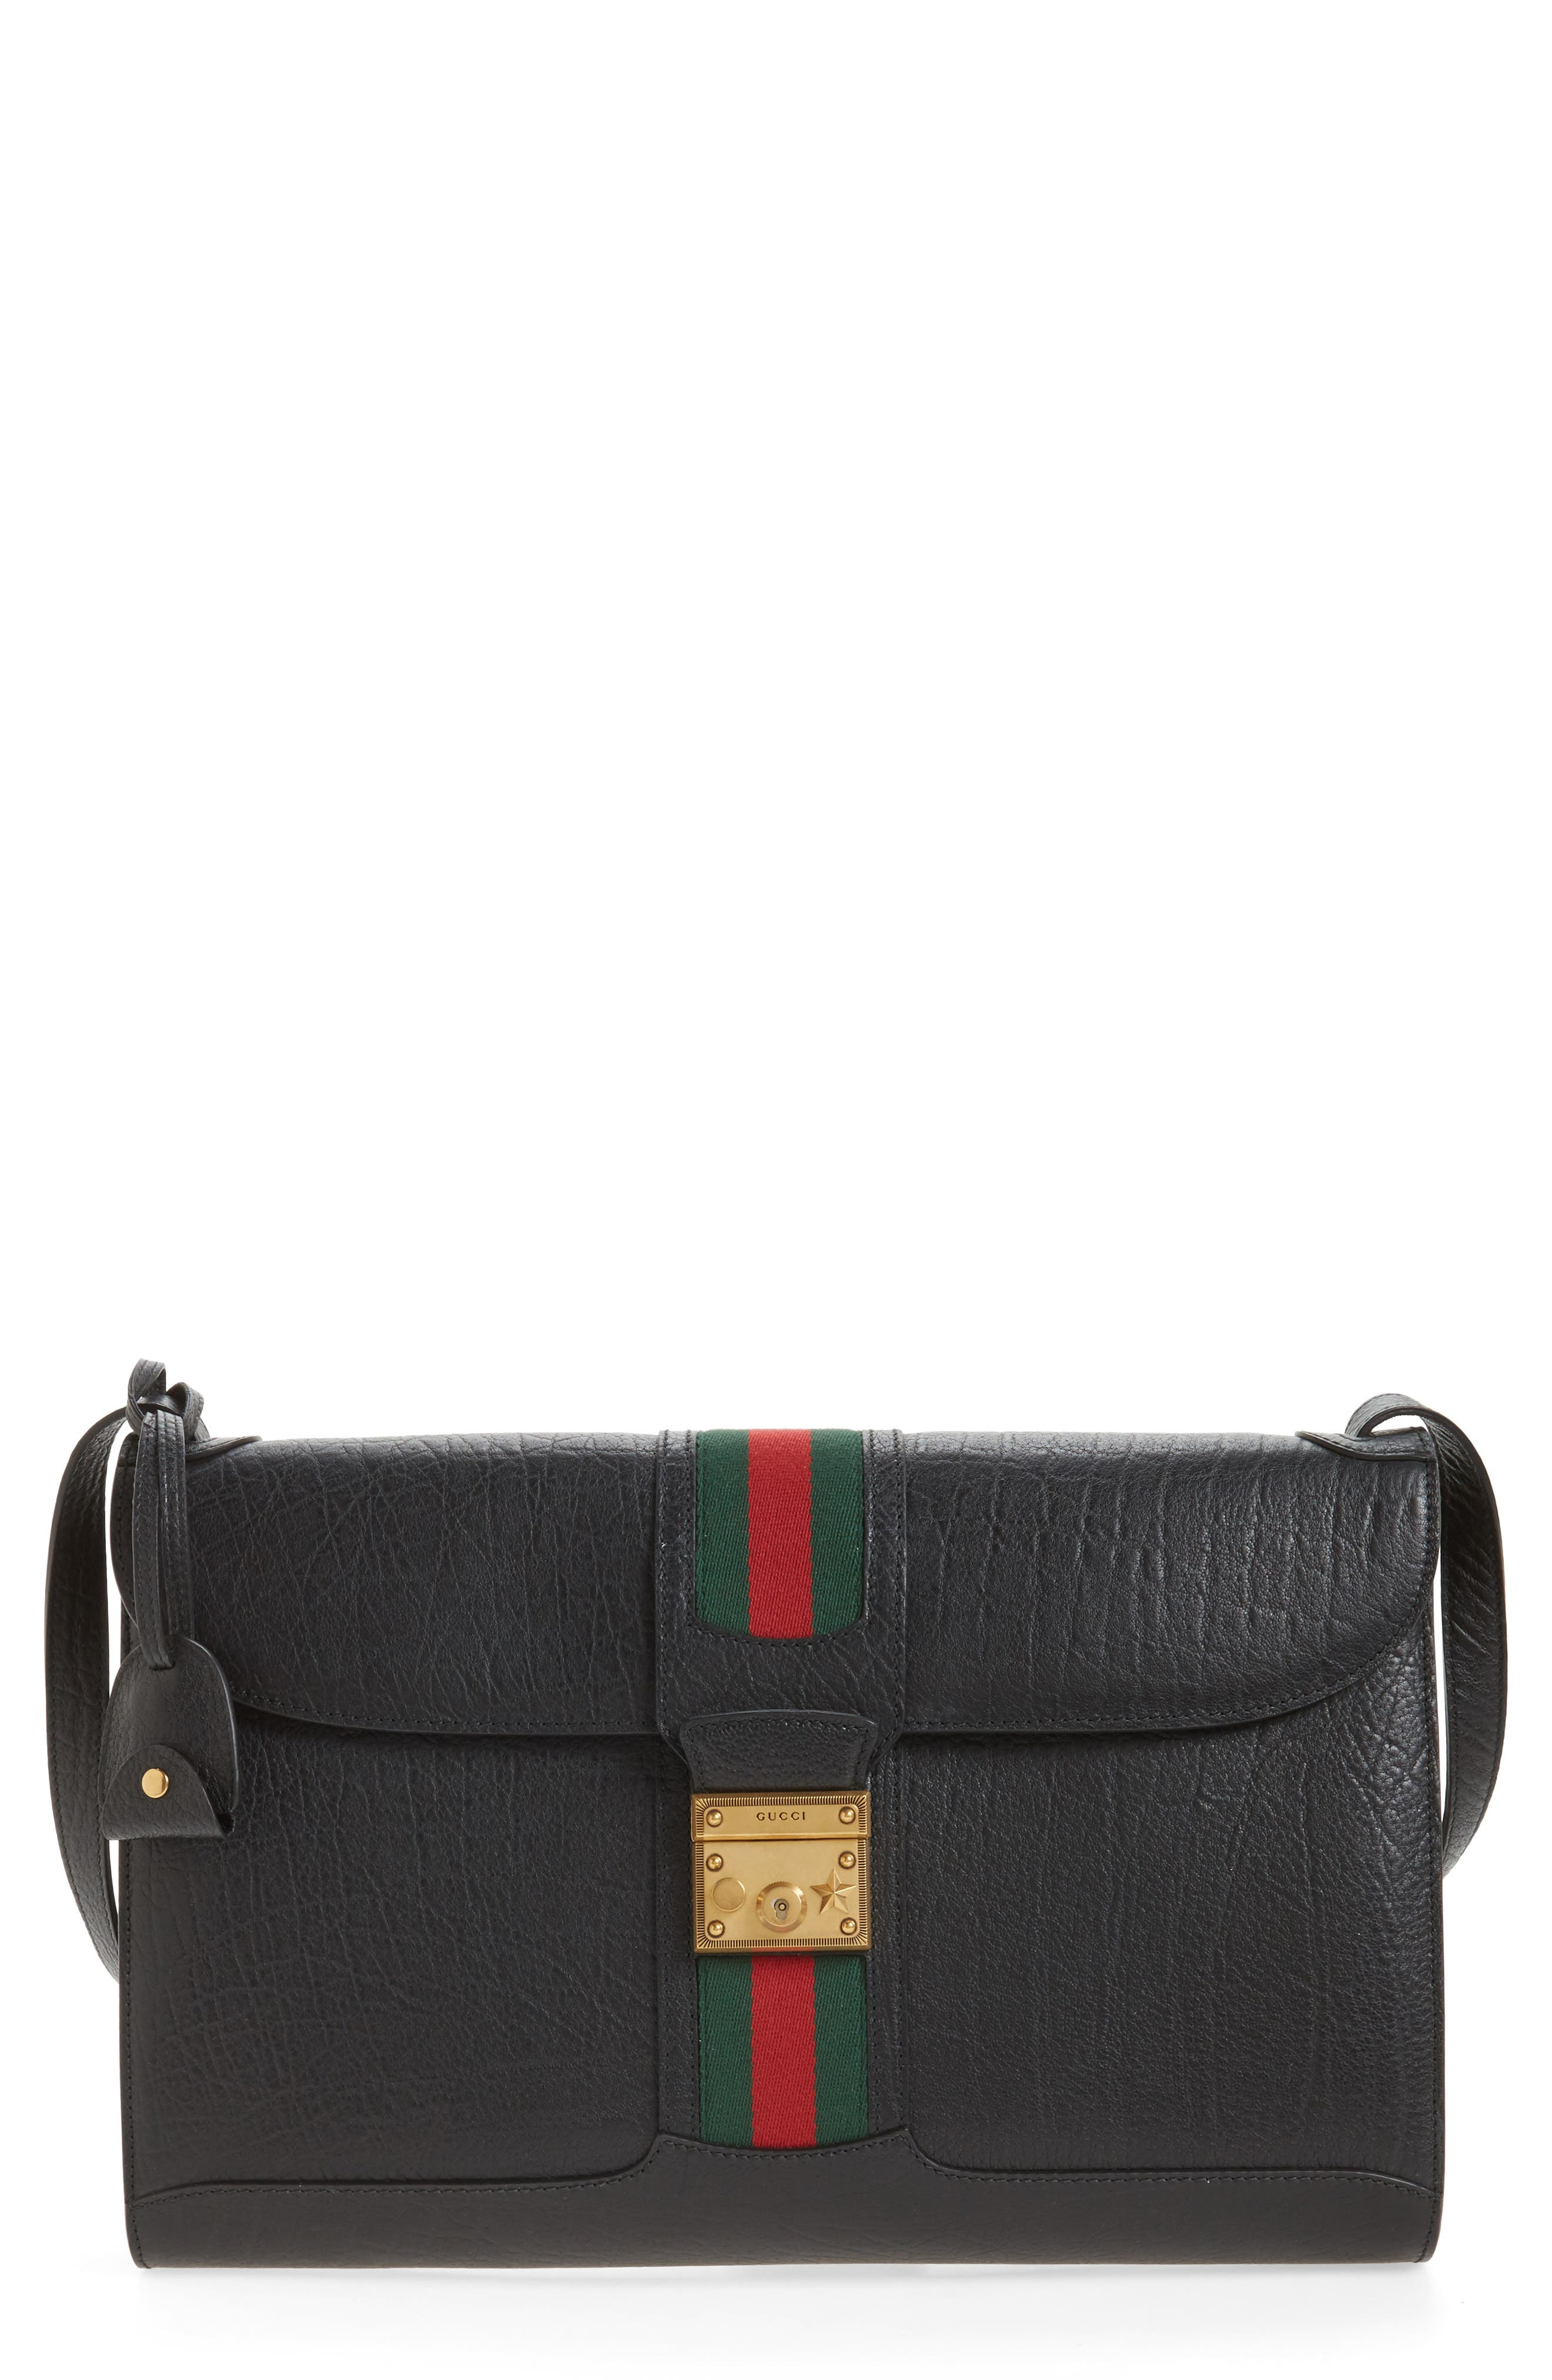 GUCCI Neo Vintage Messenger Bag